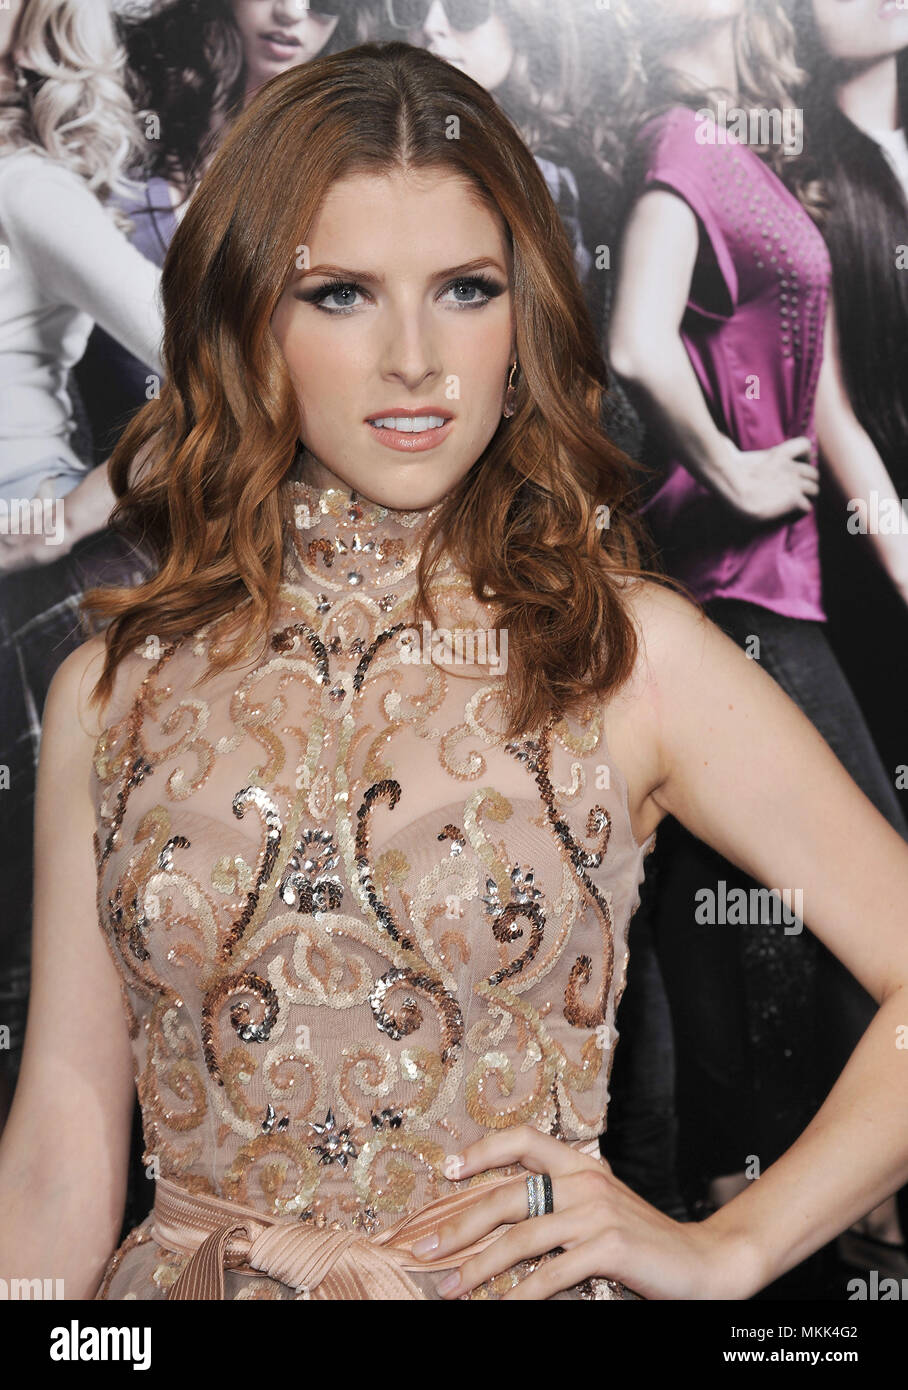 Anna Kendrick 40 Red Carpet Event High Resolution Stock Photography And Images Alamy